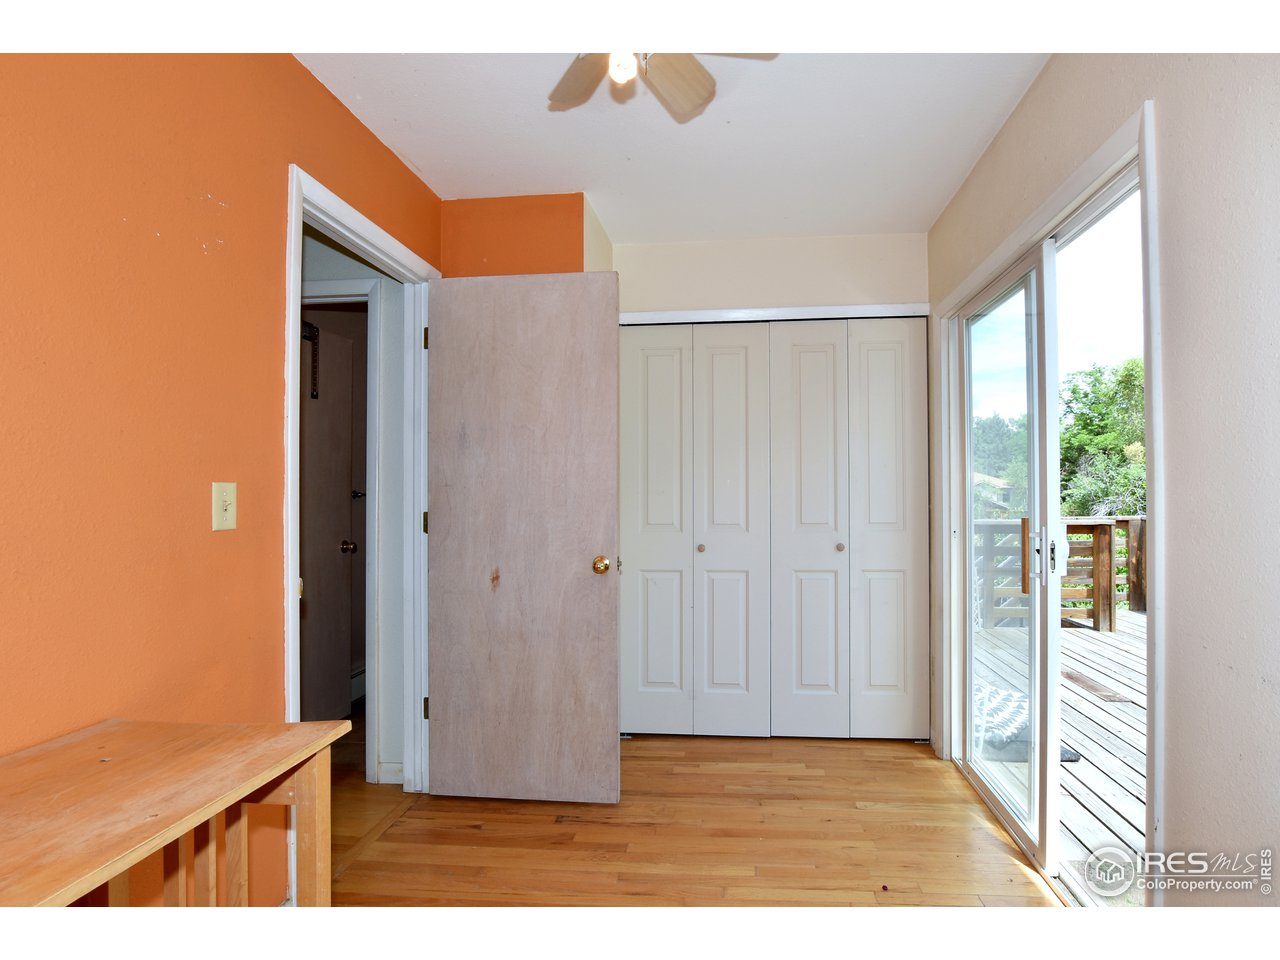 And the 2nd story laundry room